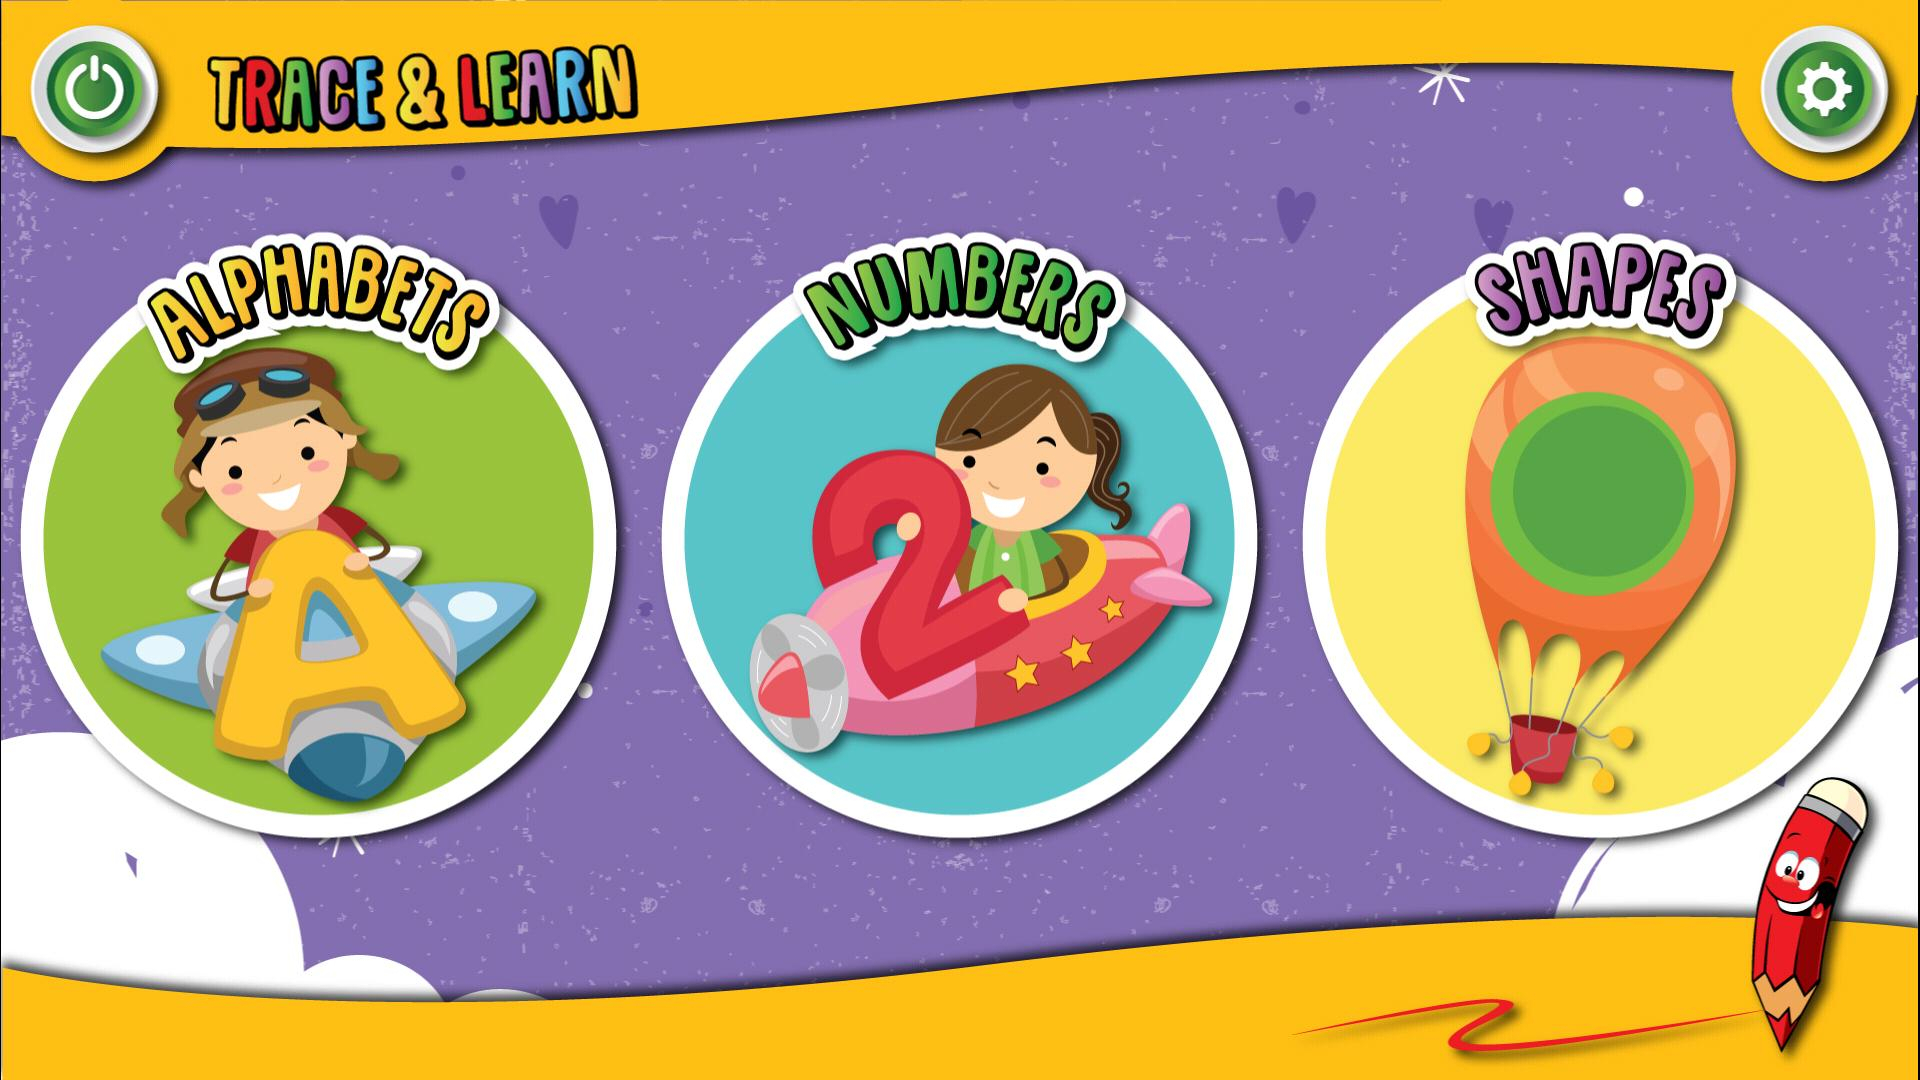 Abc Tracing Games For Kids For Android - Apk Download in Abc Tracing Games